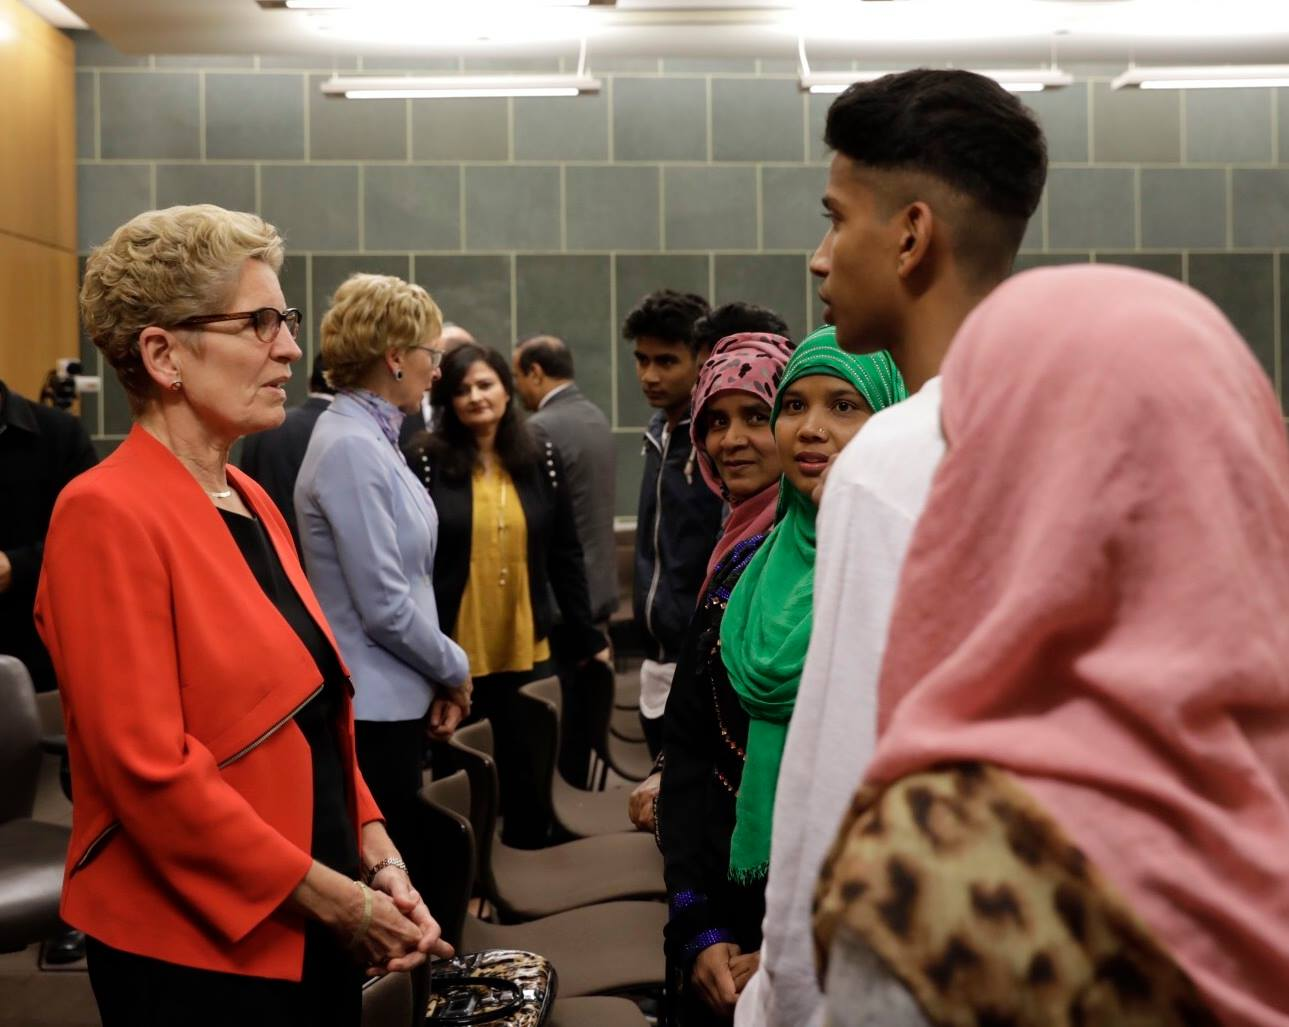 The event was the first in a series of town halls the premier is set to hold across the province to discuss fairness, a pervasive theme in her messaging this year and which will likely form a key part of her re-election platform next year. (Photo:  Kathleen Wynne/Facebook)